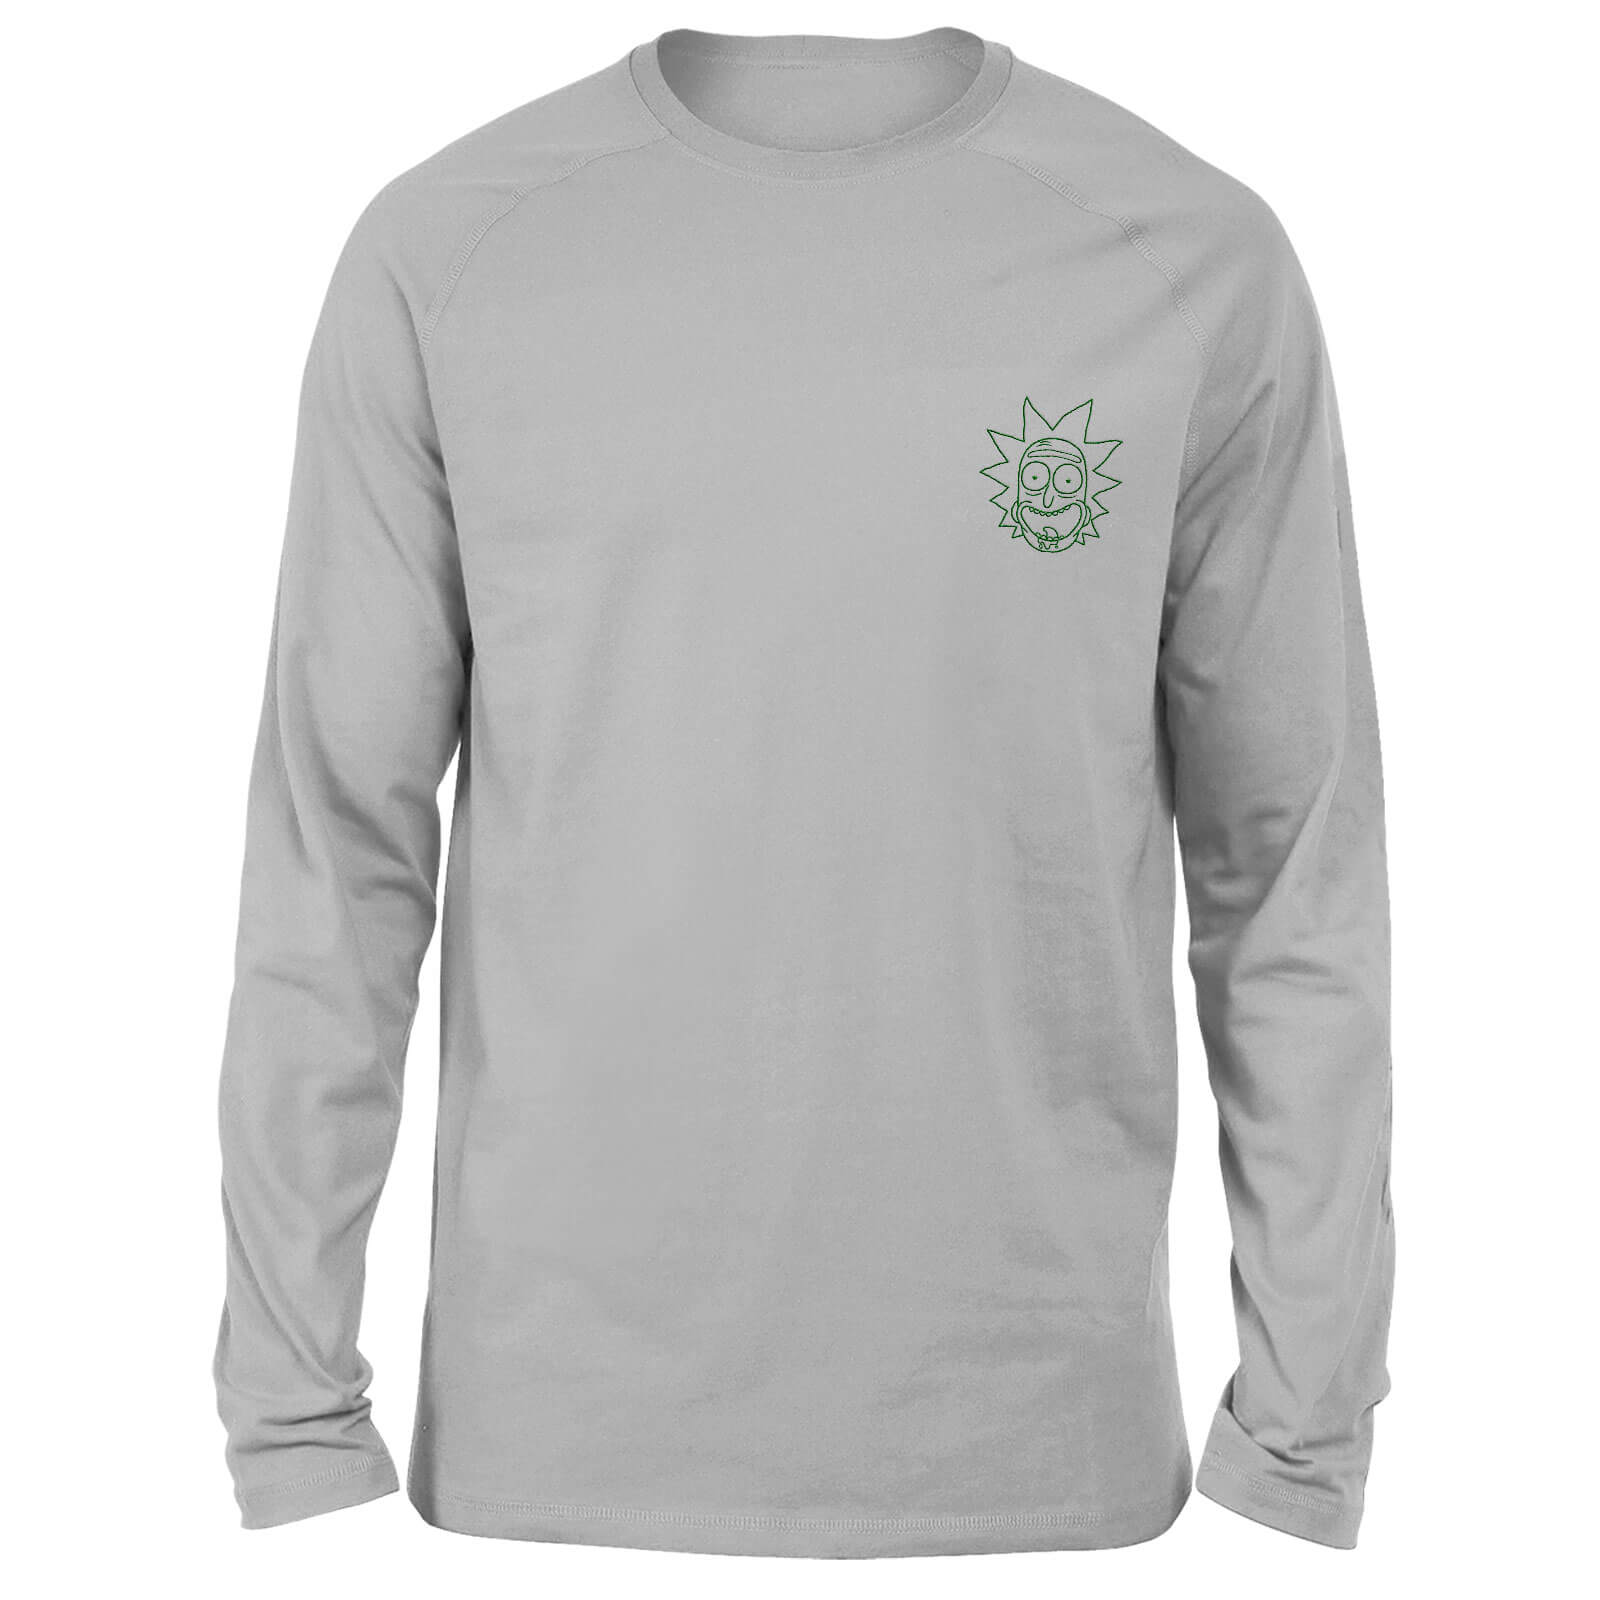 Rick and Morty Rick Embroidered Unisex Long Sleeved T-Shirt - Grey - M de Rick and Morty